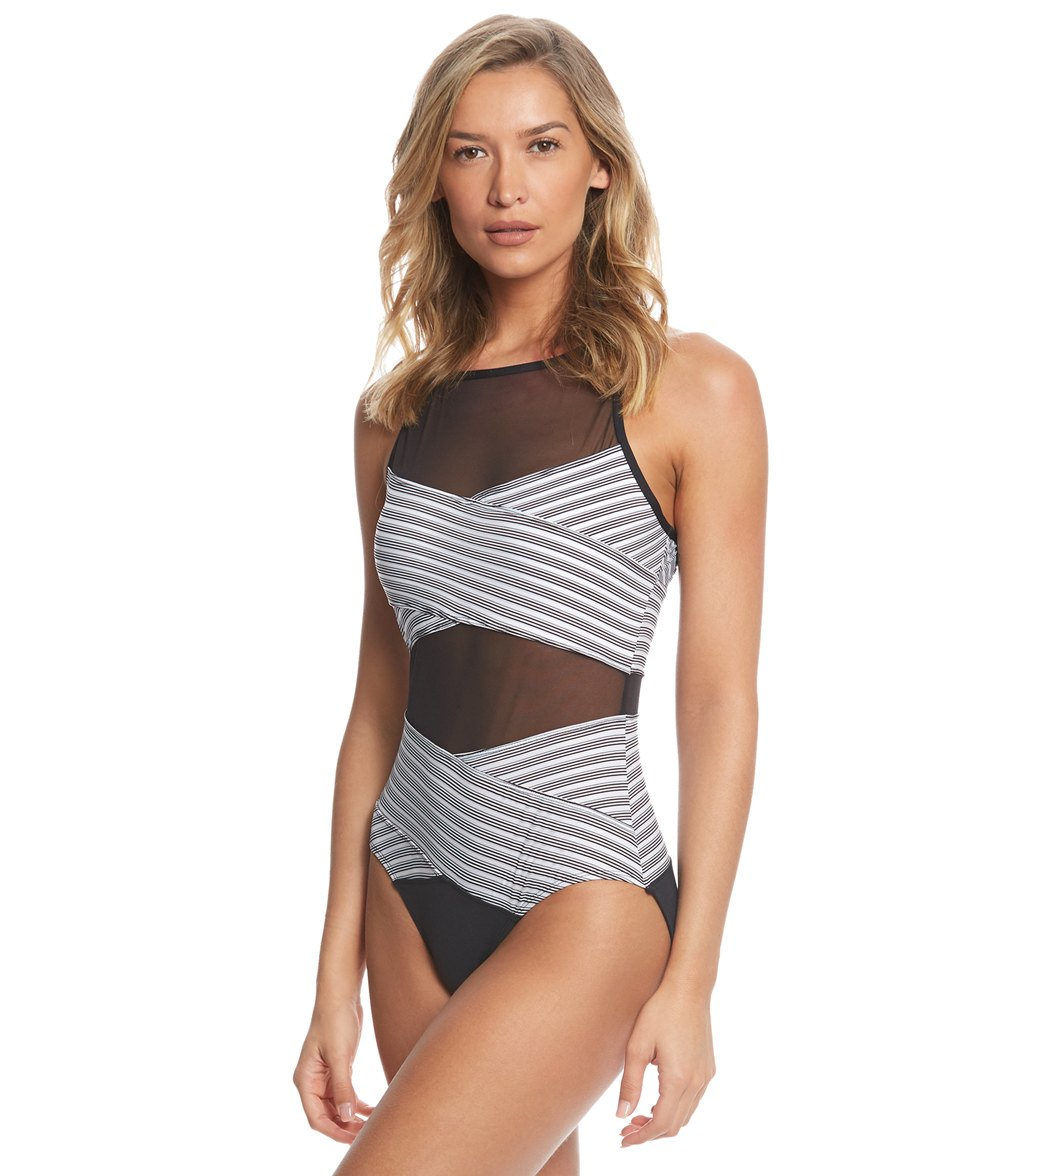 406a89b6eb Anne Cole Mesh One Piece Swimsuit at SwimOutlet.com - Free Shipping